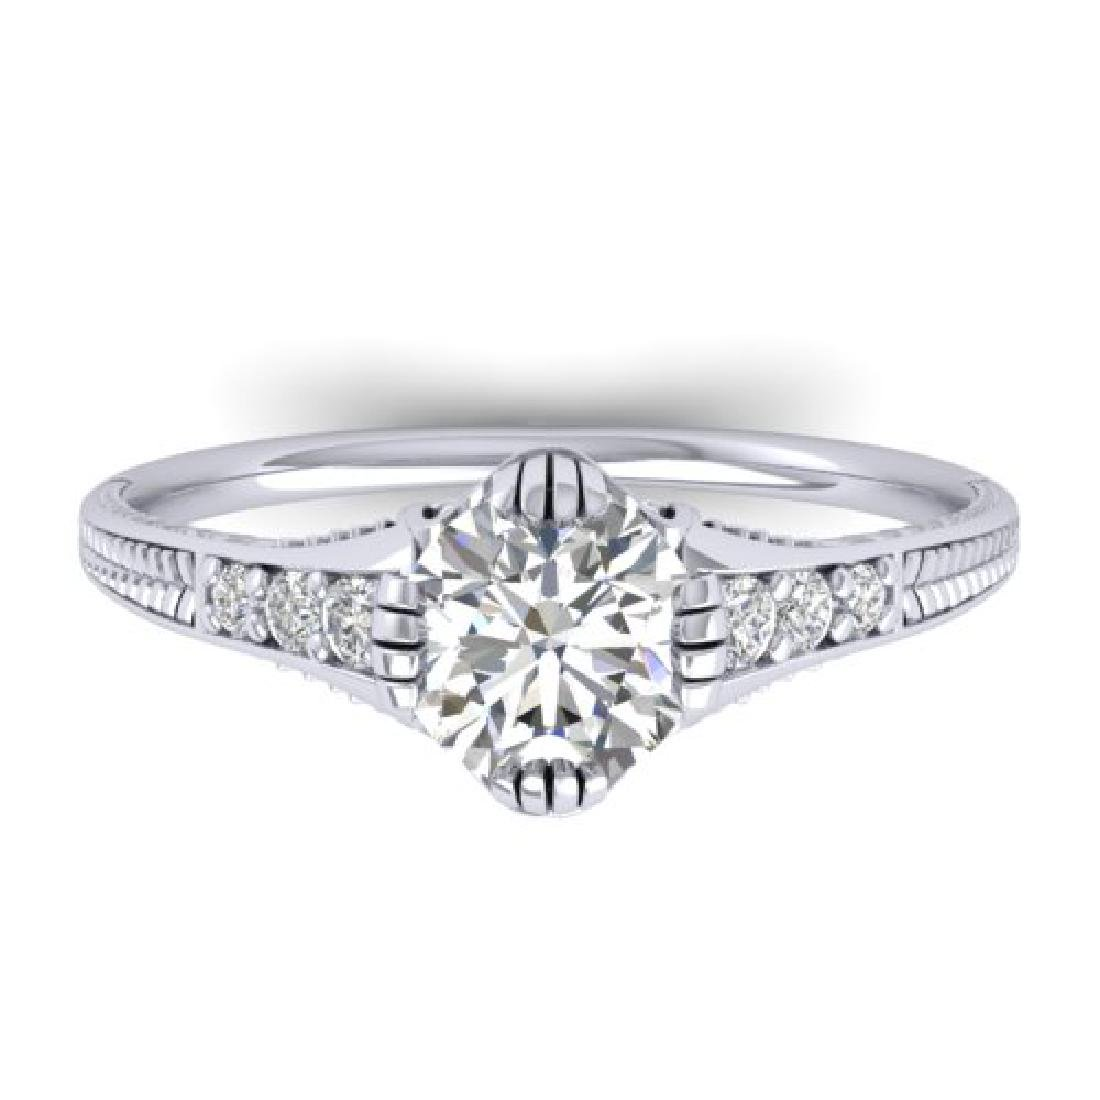 1.25 CTW Certified VS/SI Diamond Solitaire Art Deco